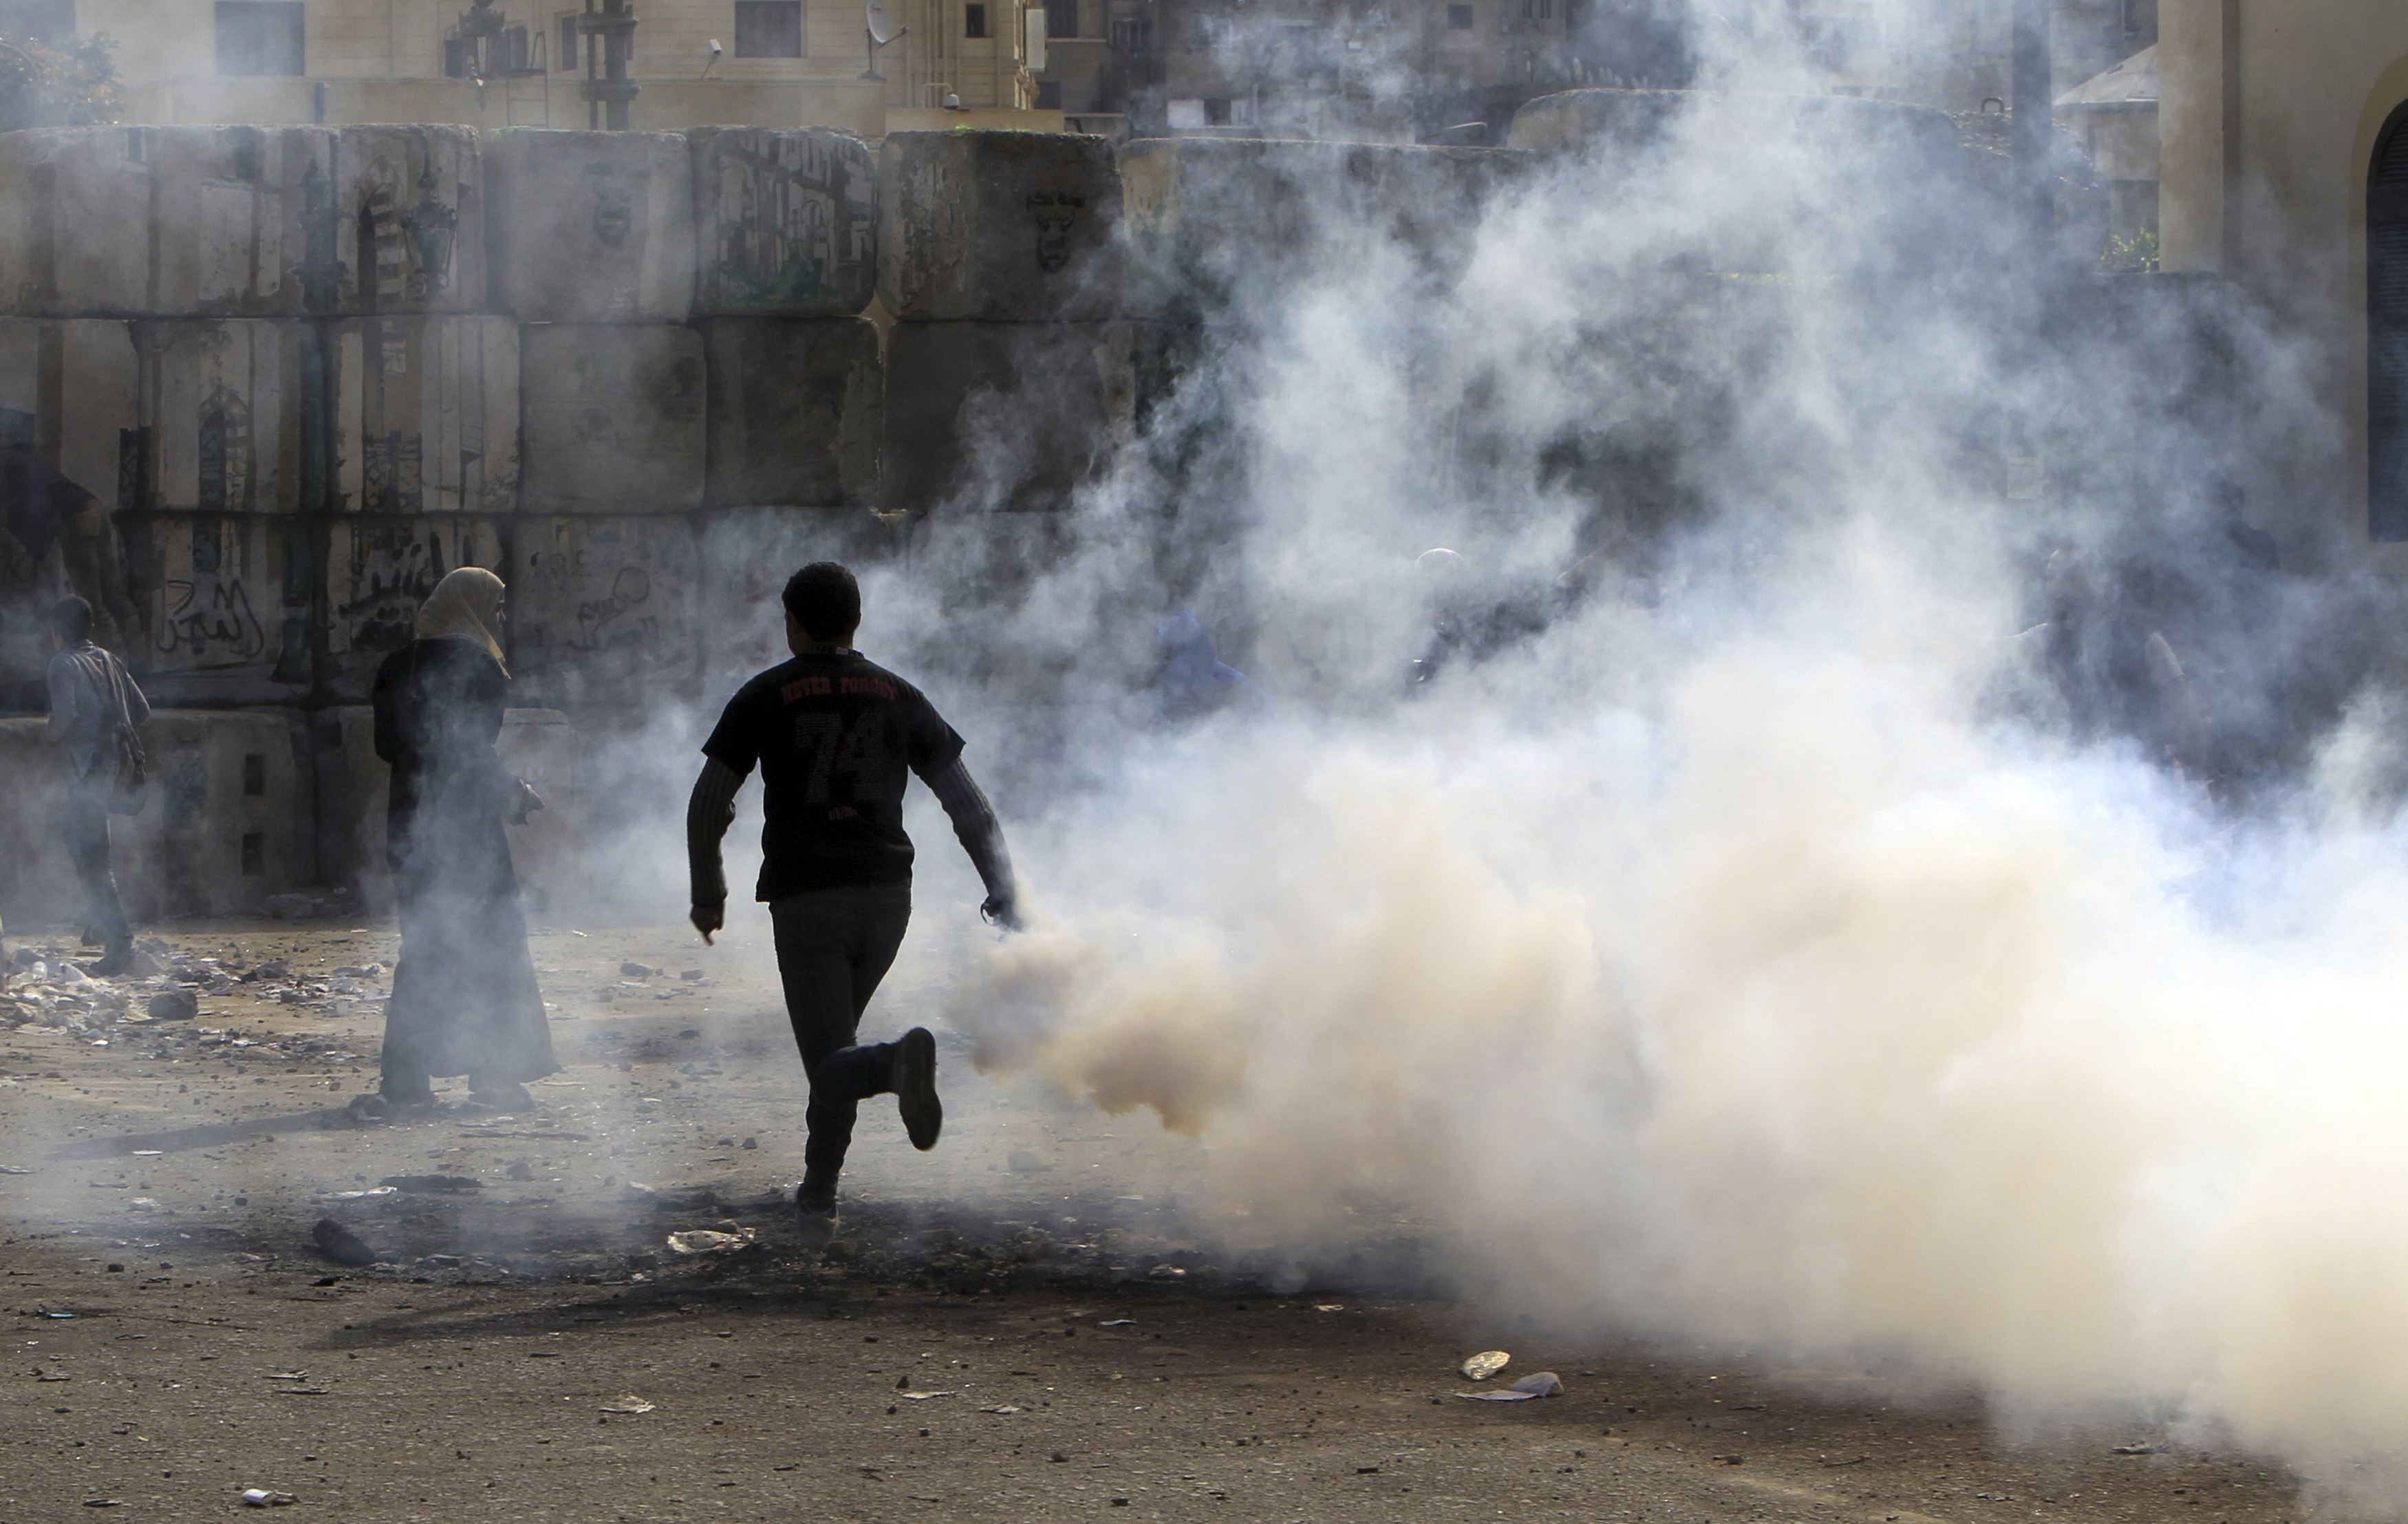 Protester runs with a tear gas canister, which was earlier fired by riot police, during a protest in Cairo